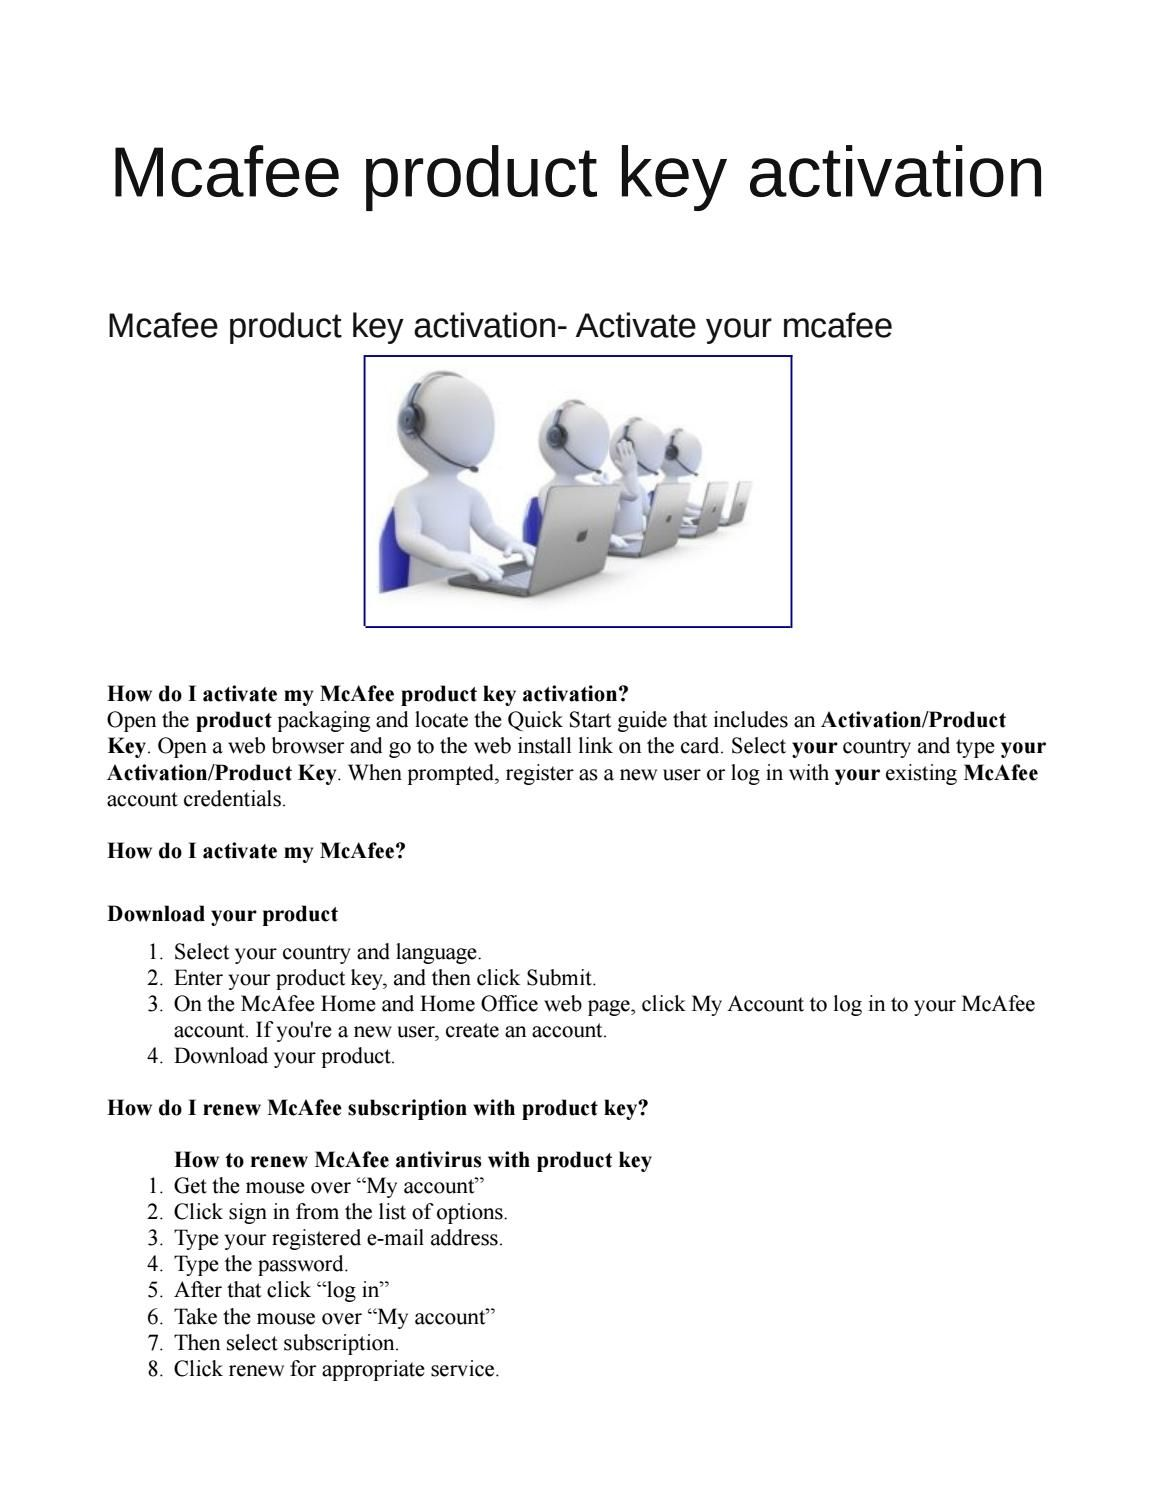 activate mcafee using product key